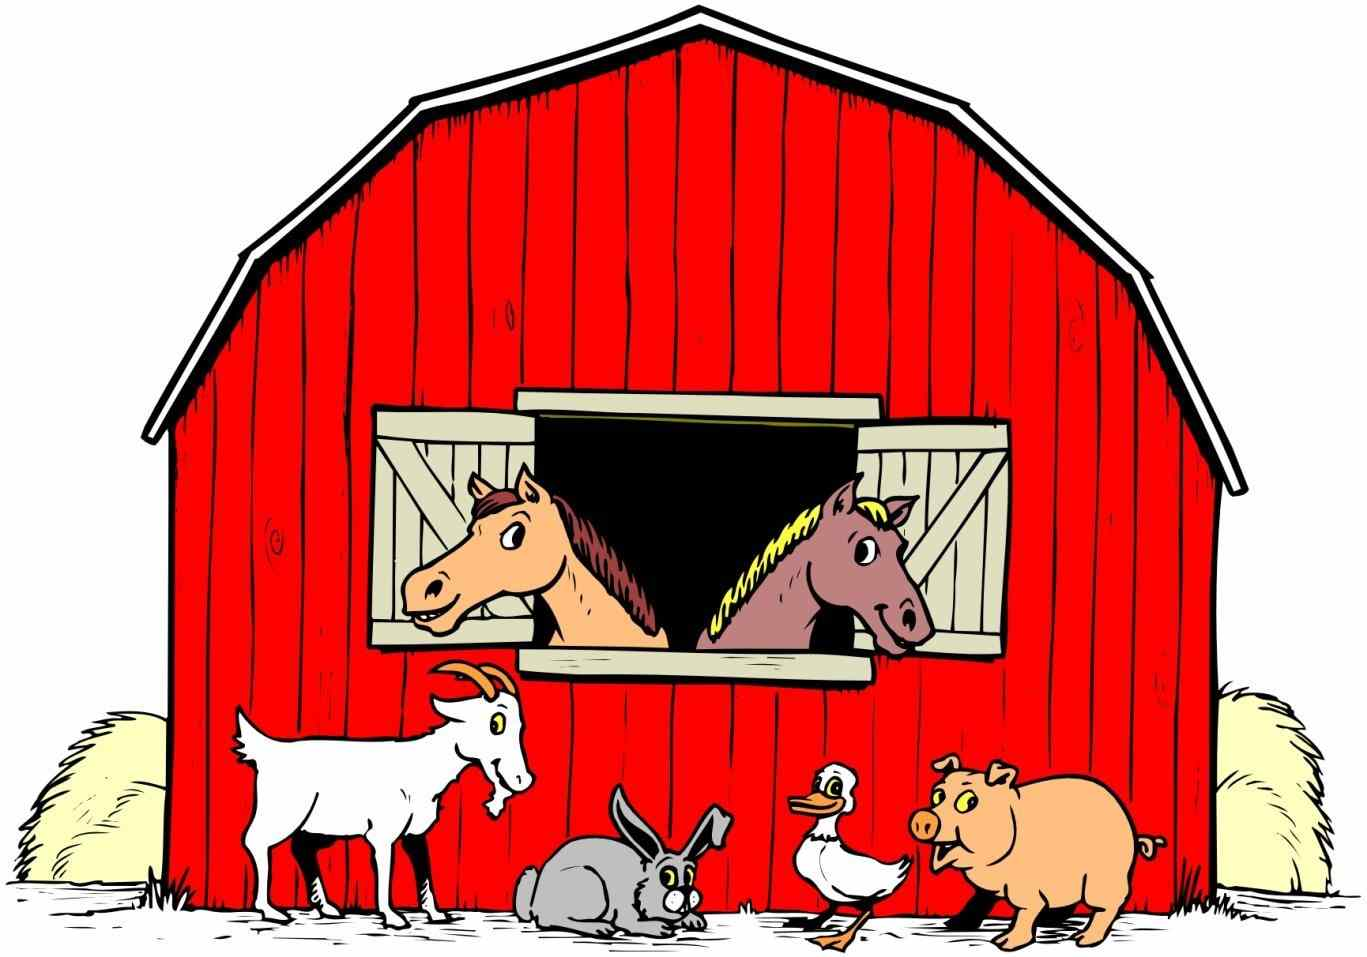 Farm pencil and in. Barn clipart horse stable